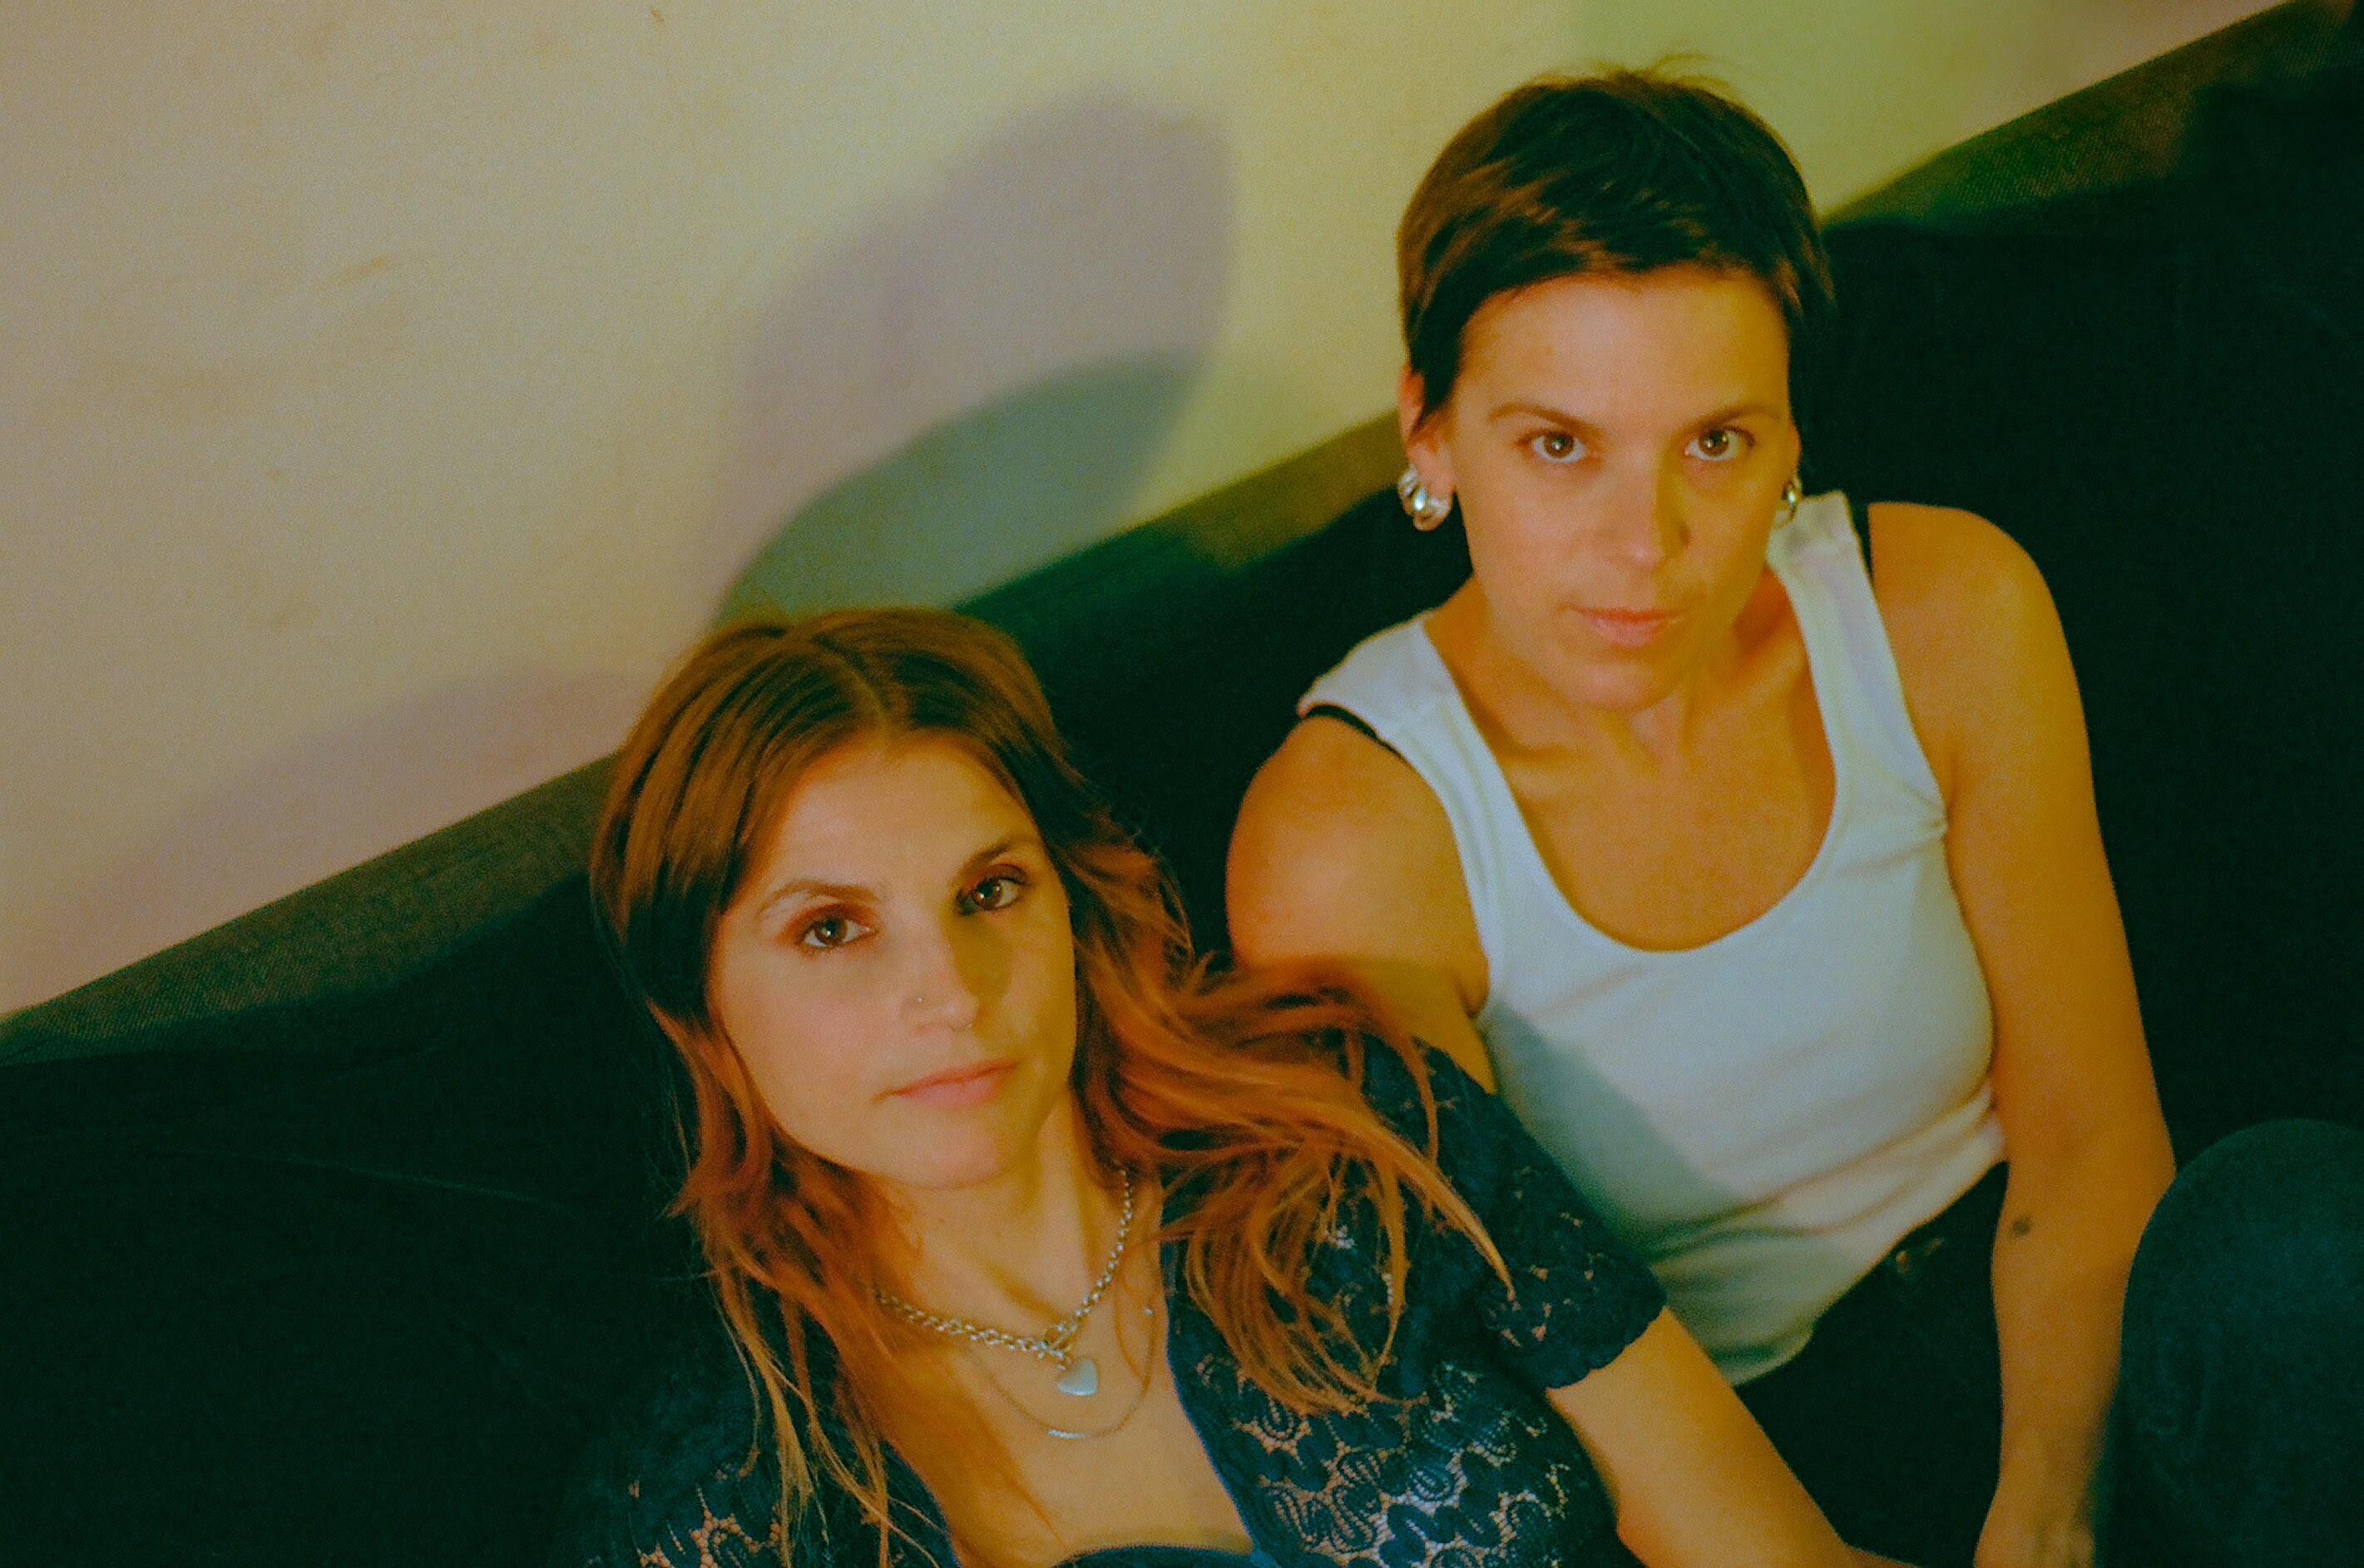 TEEN are comprised of Teeny, Lizzie, and Katherine Lieberson. The sisters grew up in a musically vibrant Halifax home, their father was composer Peter